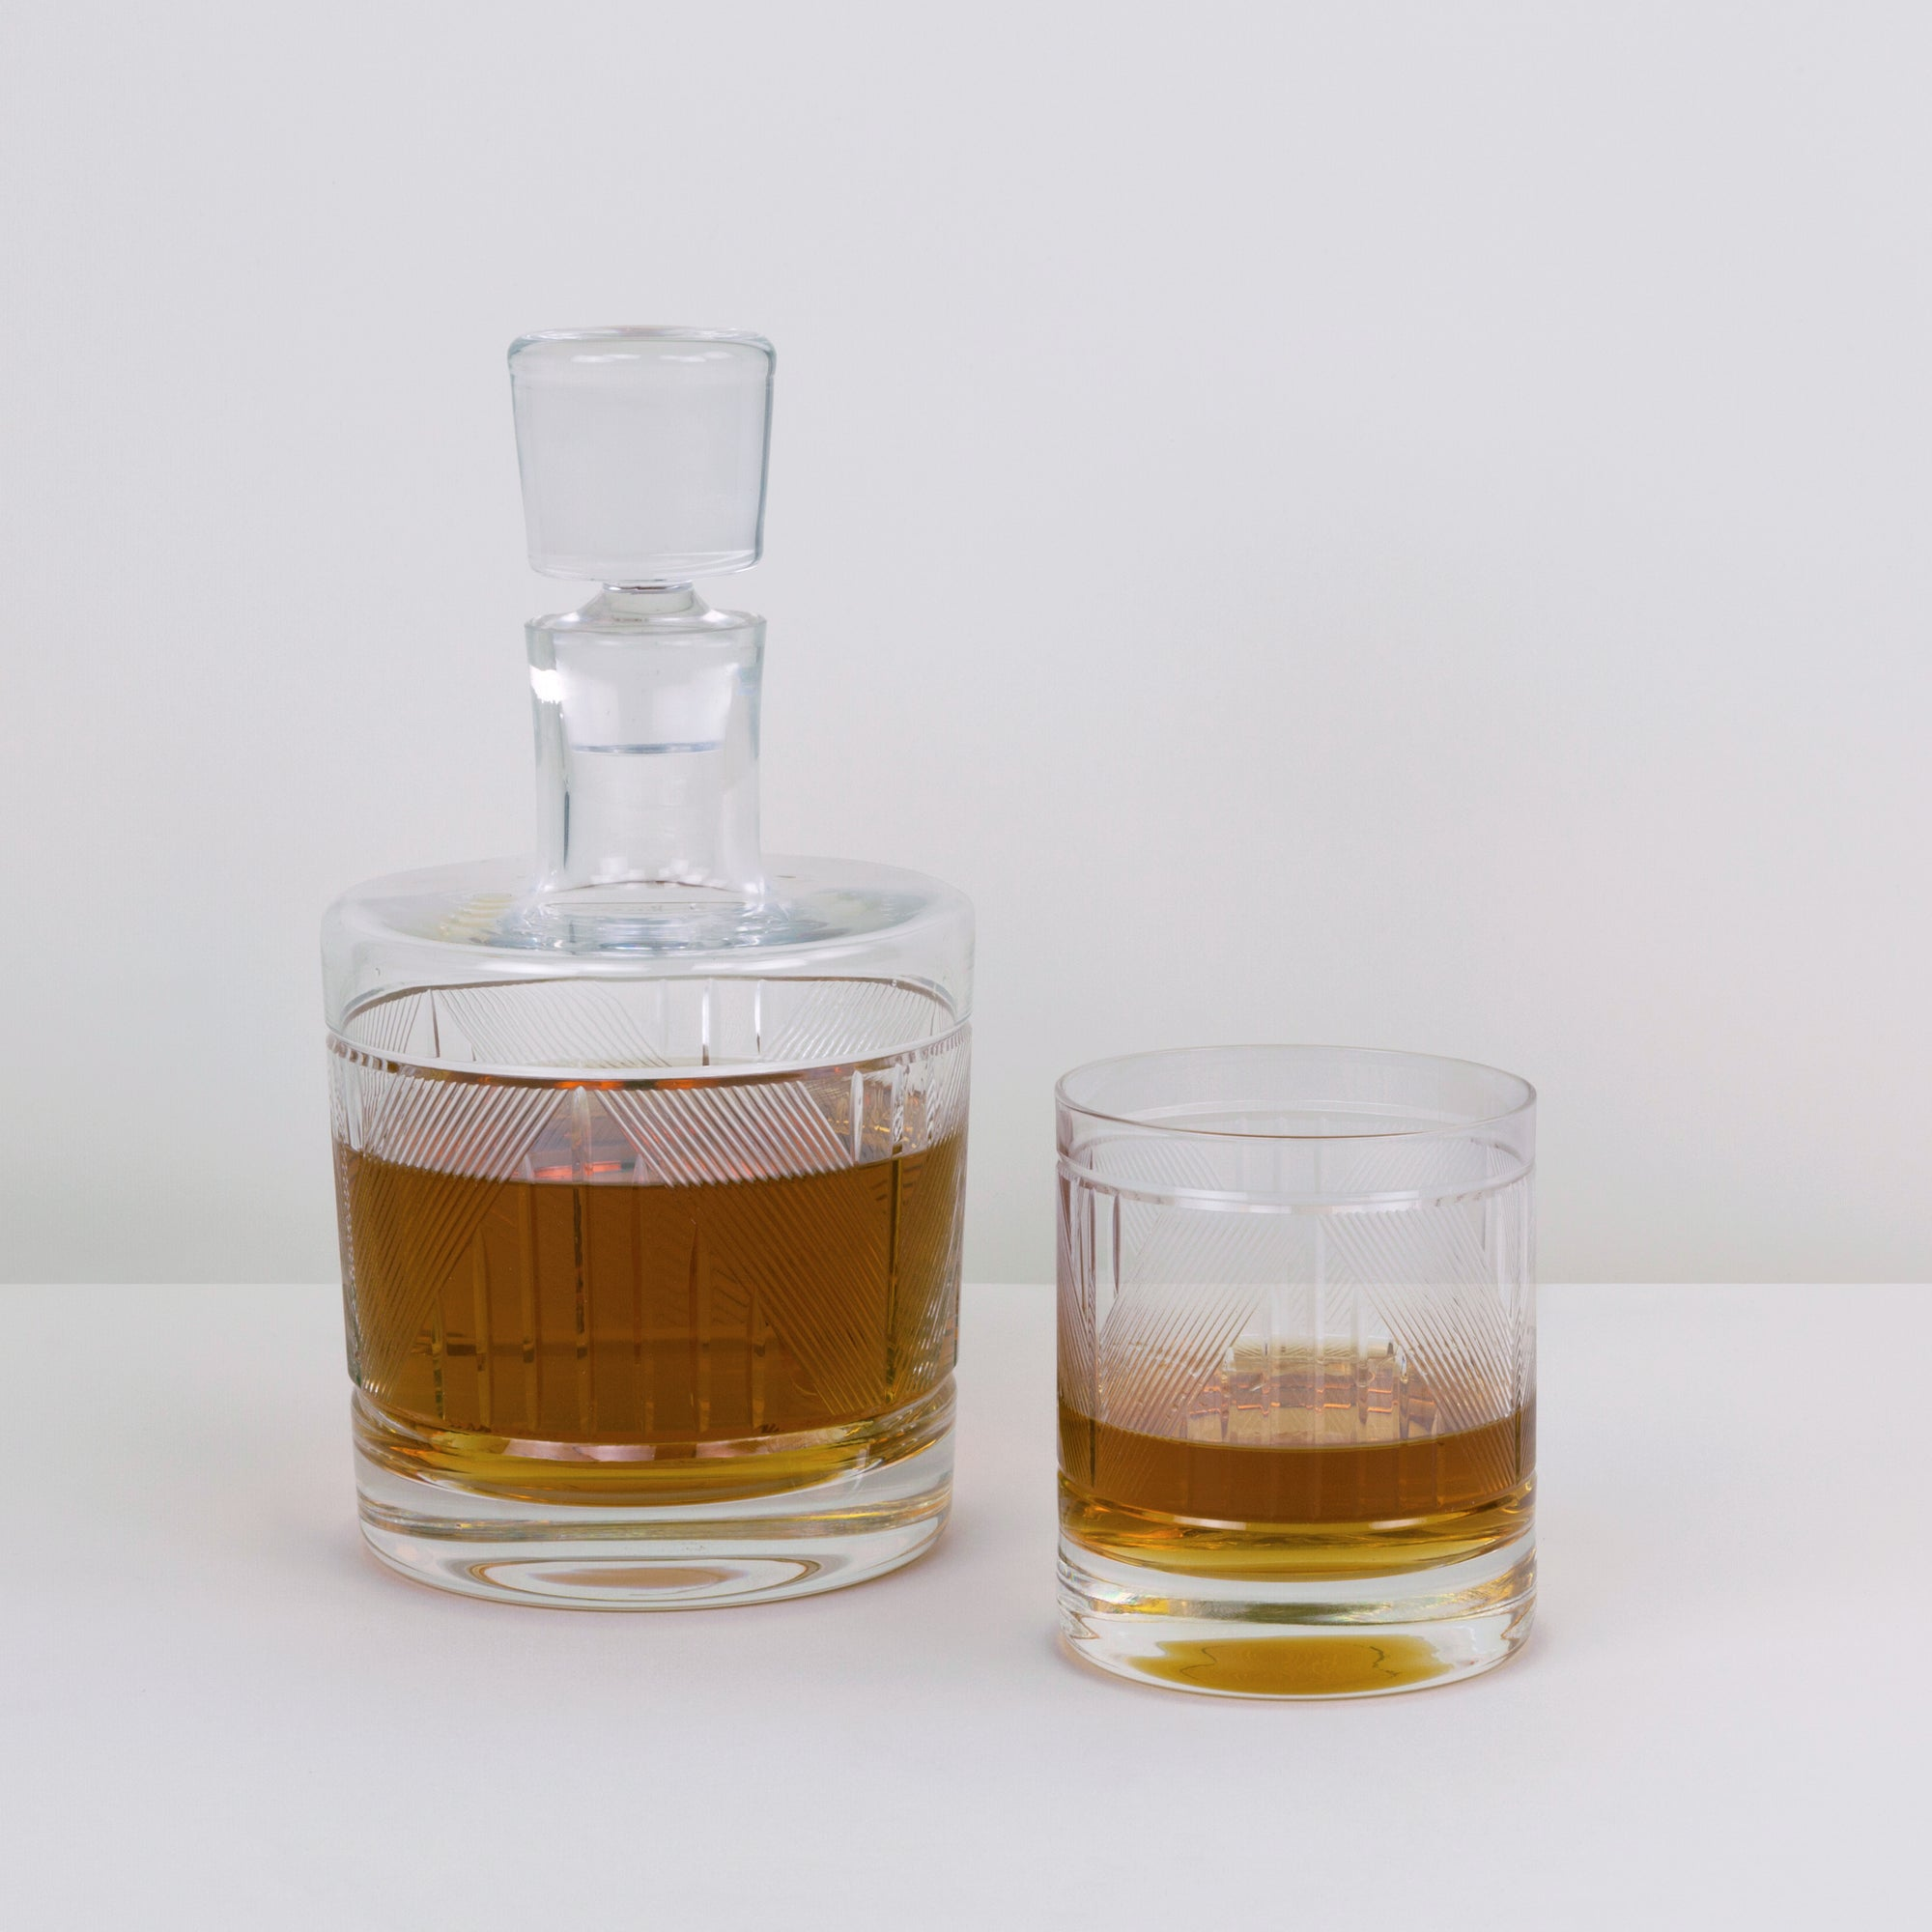 The Speakeasy Whiskey Decanter